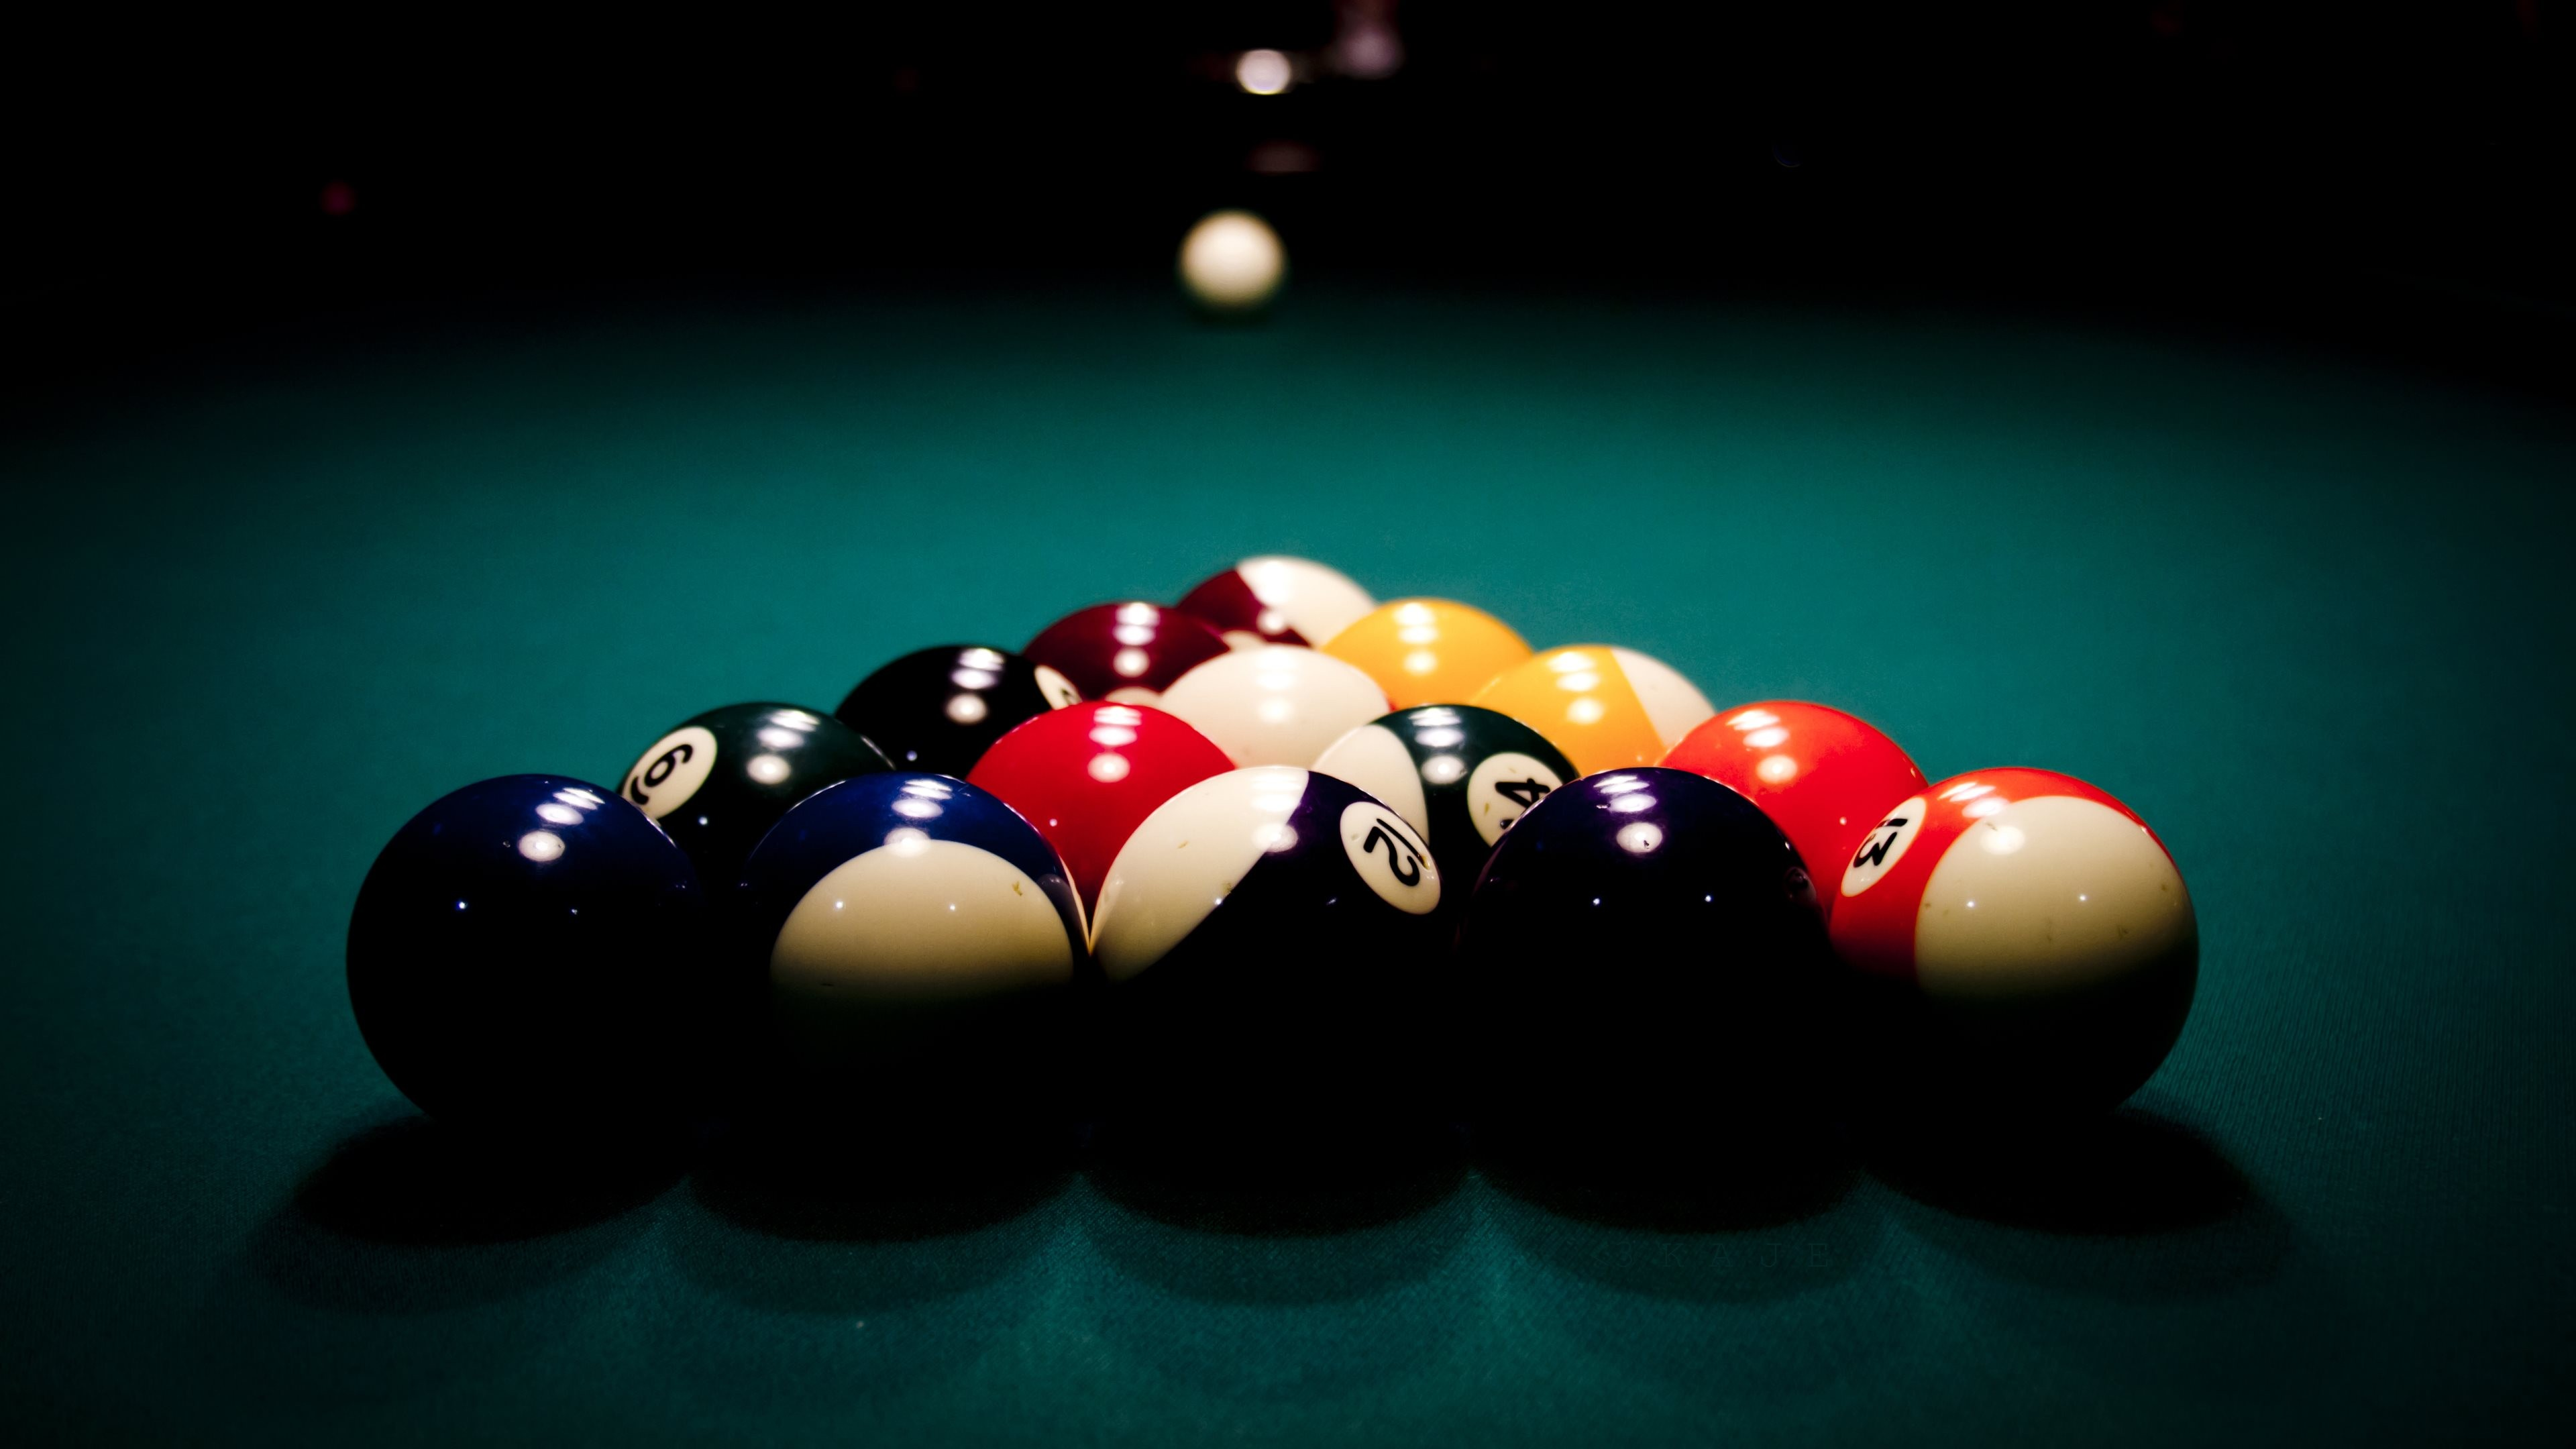 billard balls 1538786687 - Billard Balls - sports wallpapers, pool wallpapers, billard wallpapers, balls wallpapers